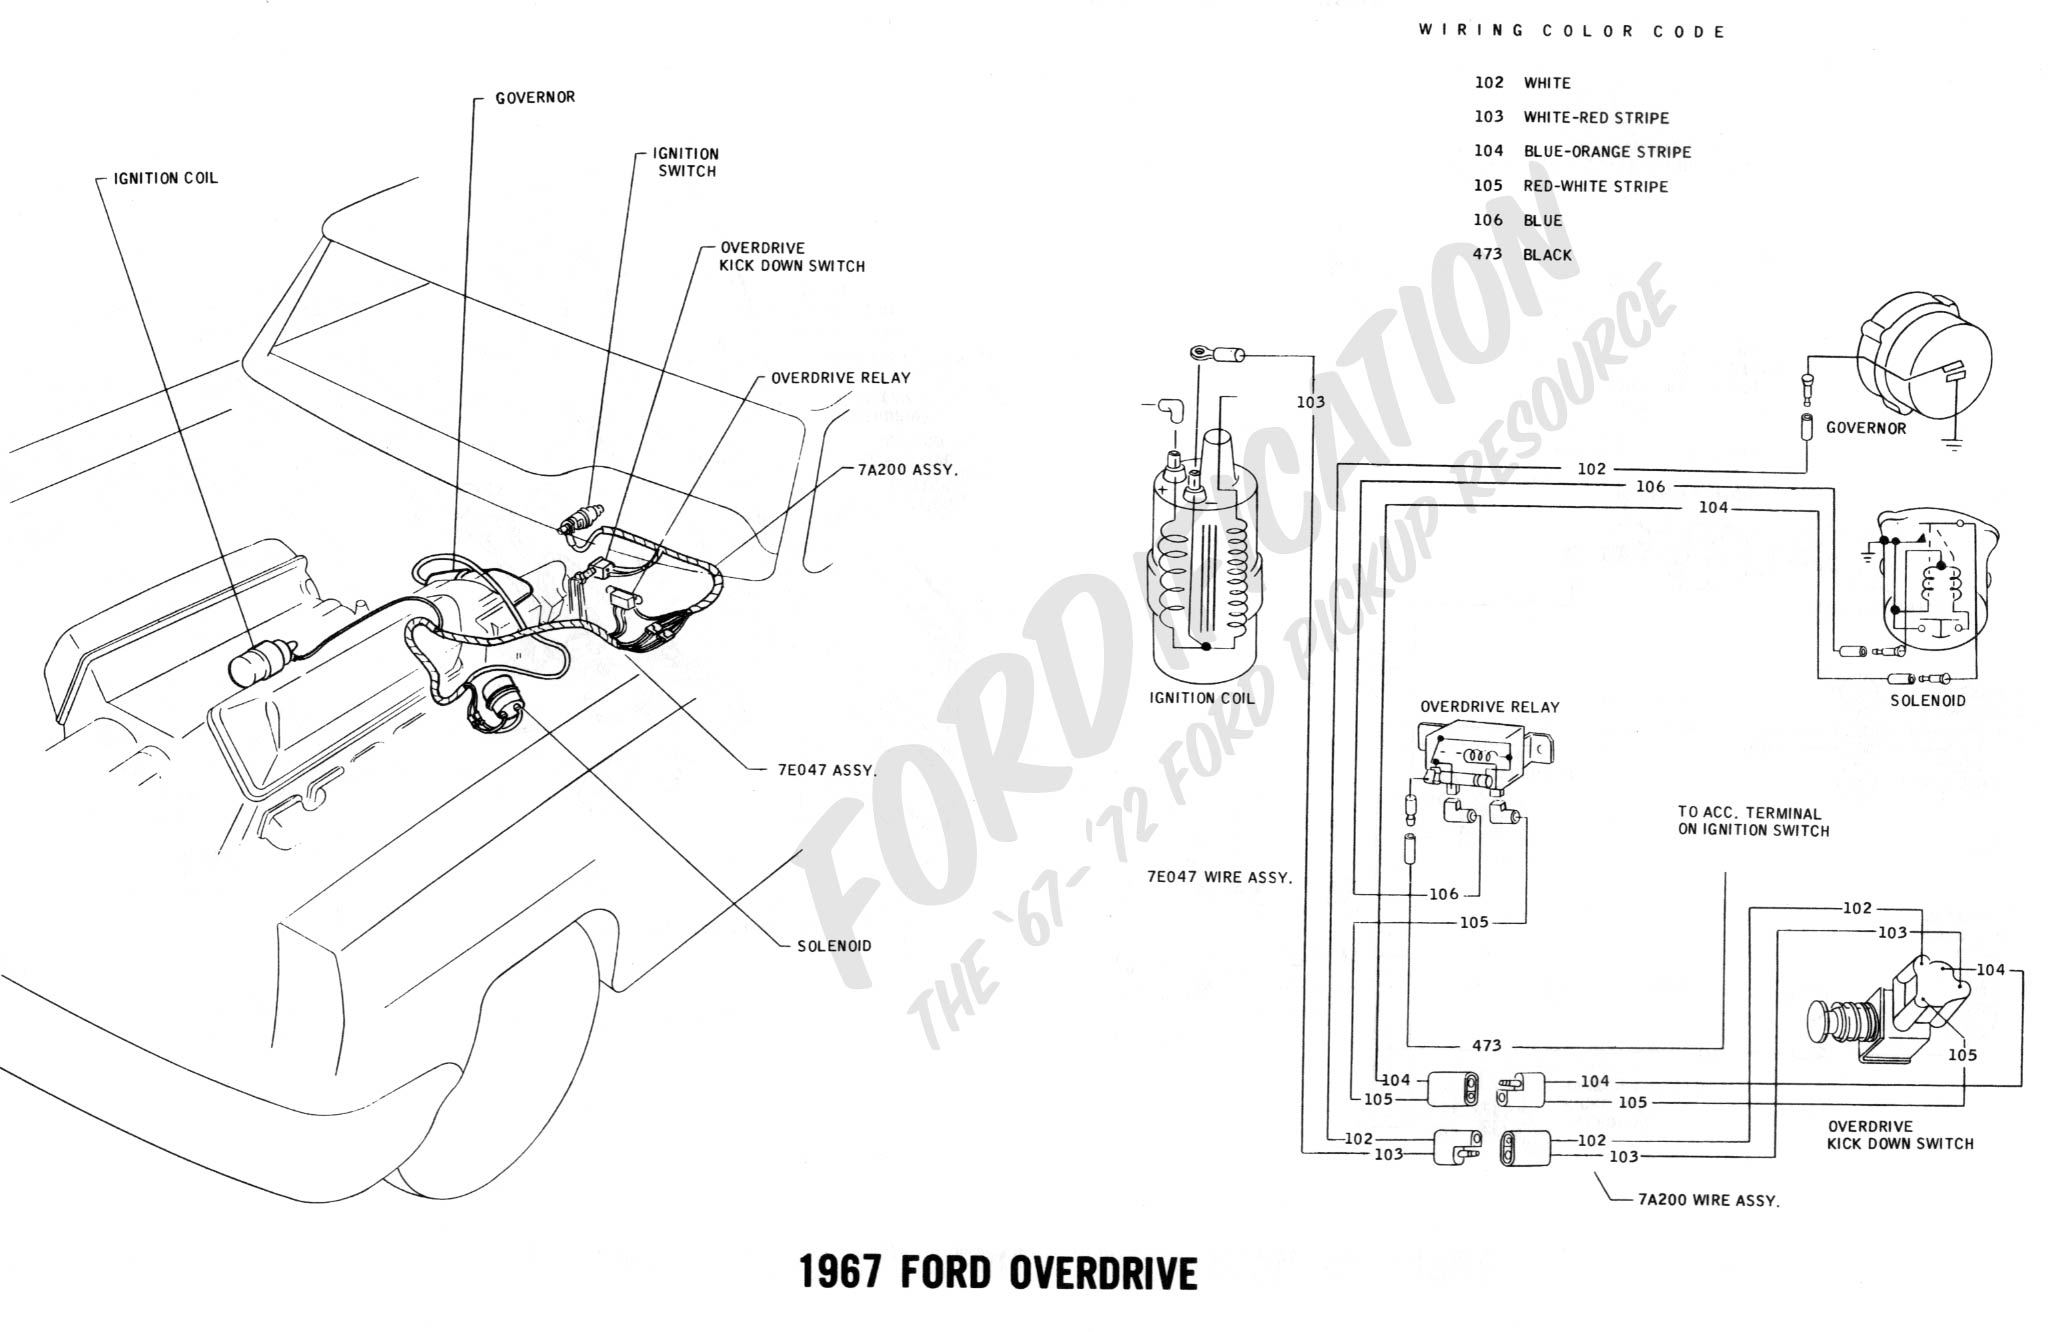 1989 ford e350 fuse panel diagram